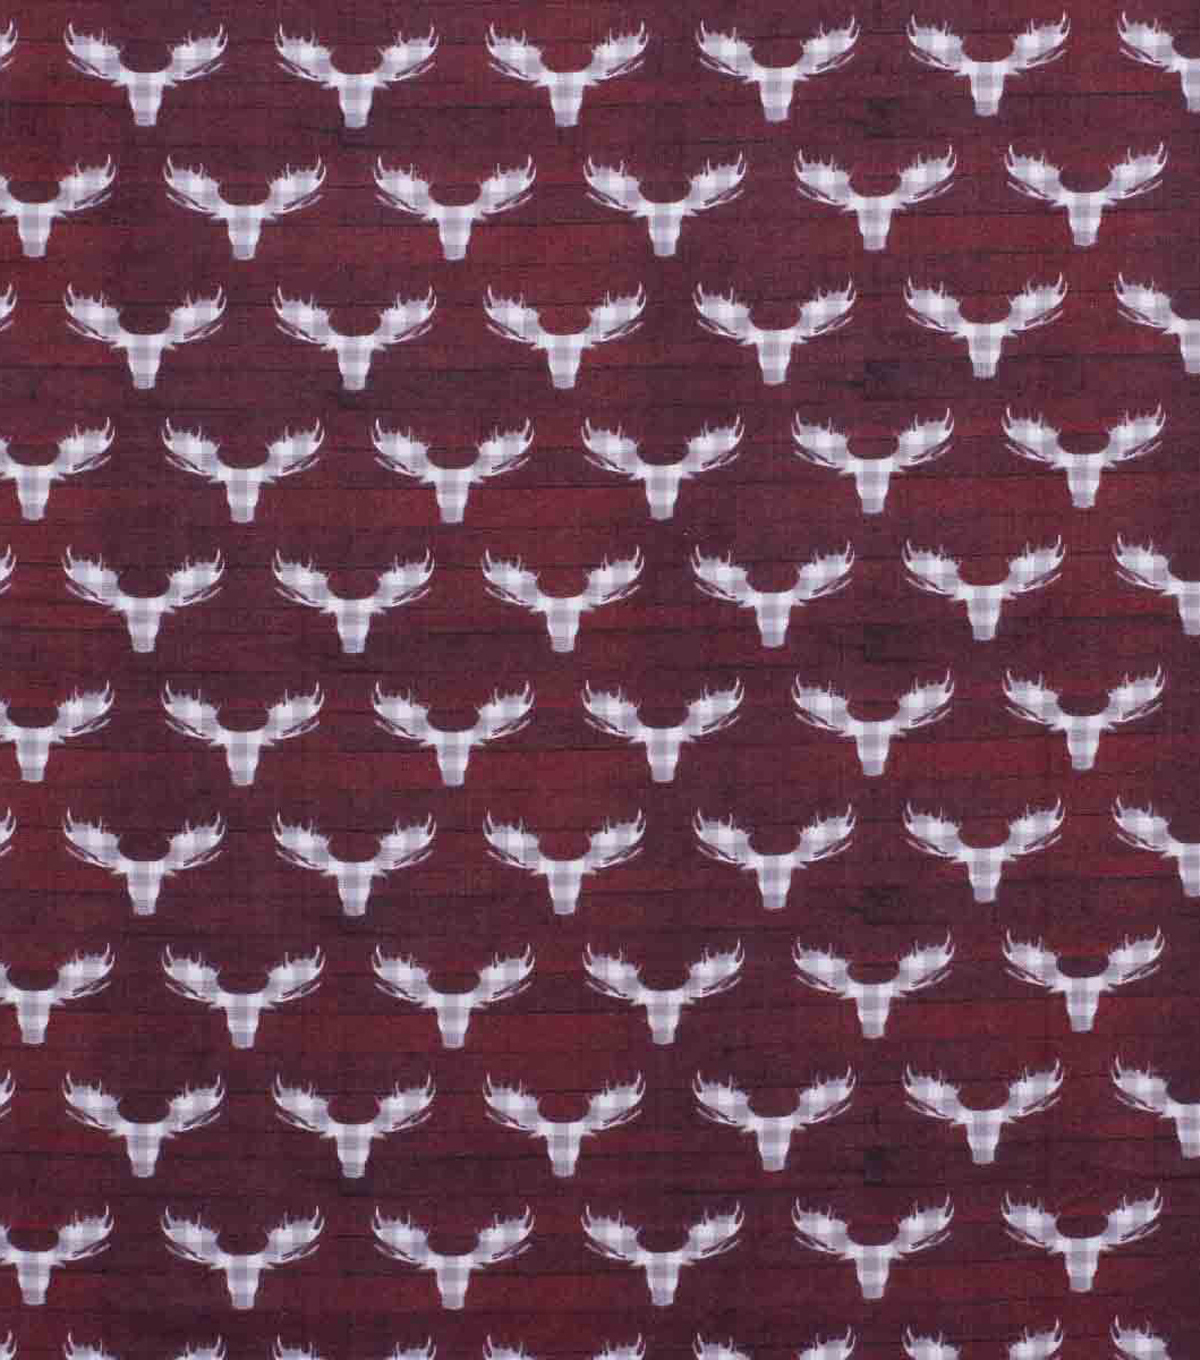 Super Snuggle Flannel Fabric-Buffalo Check Stag Head on Red